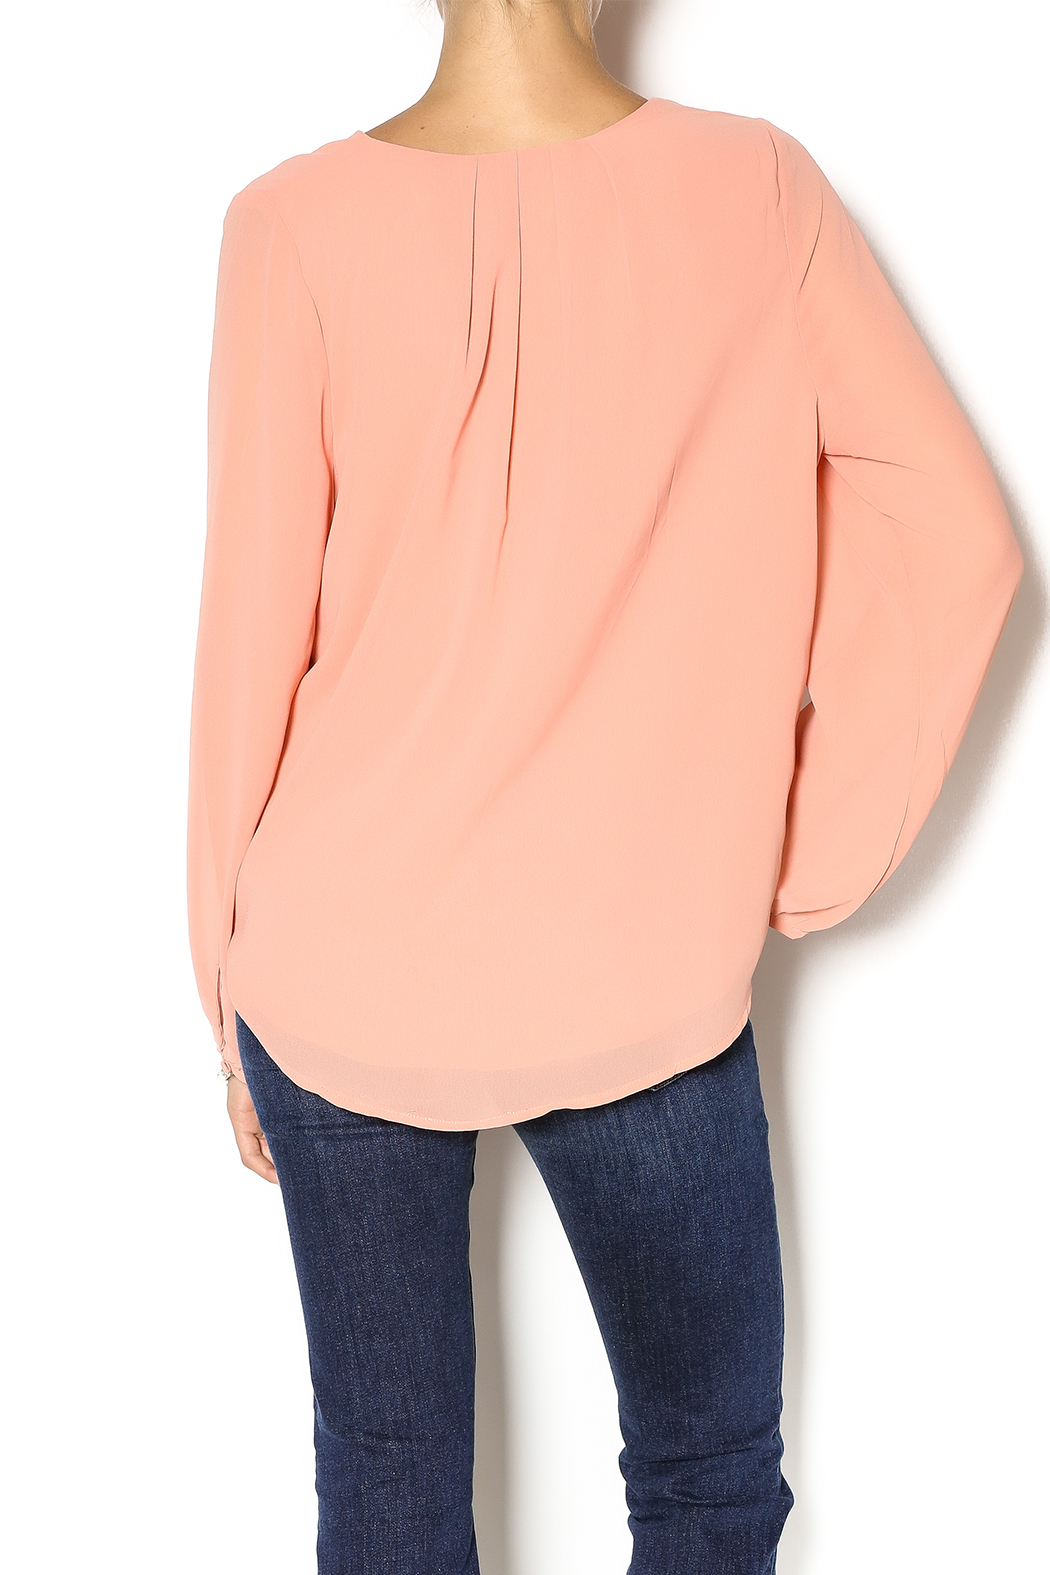 Cecico Ginger Crossover Blouse - Back Cropped Image